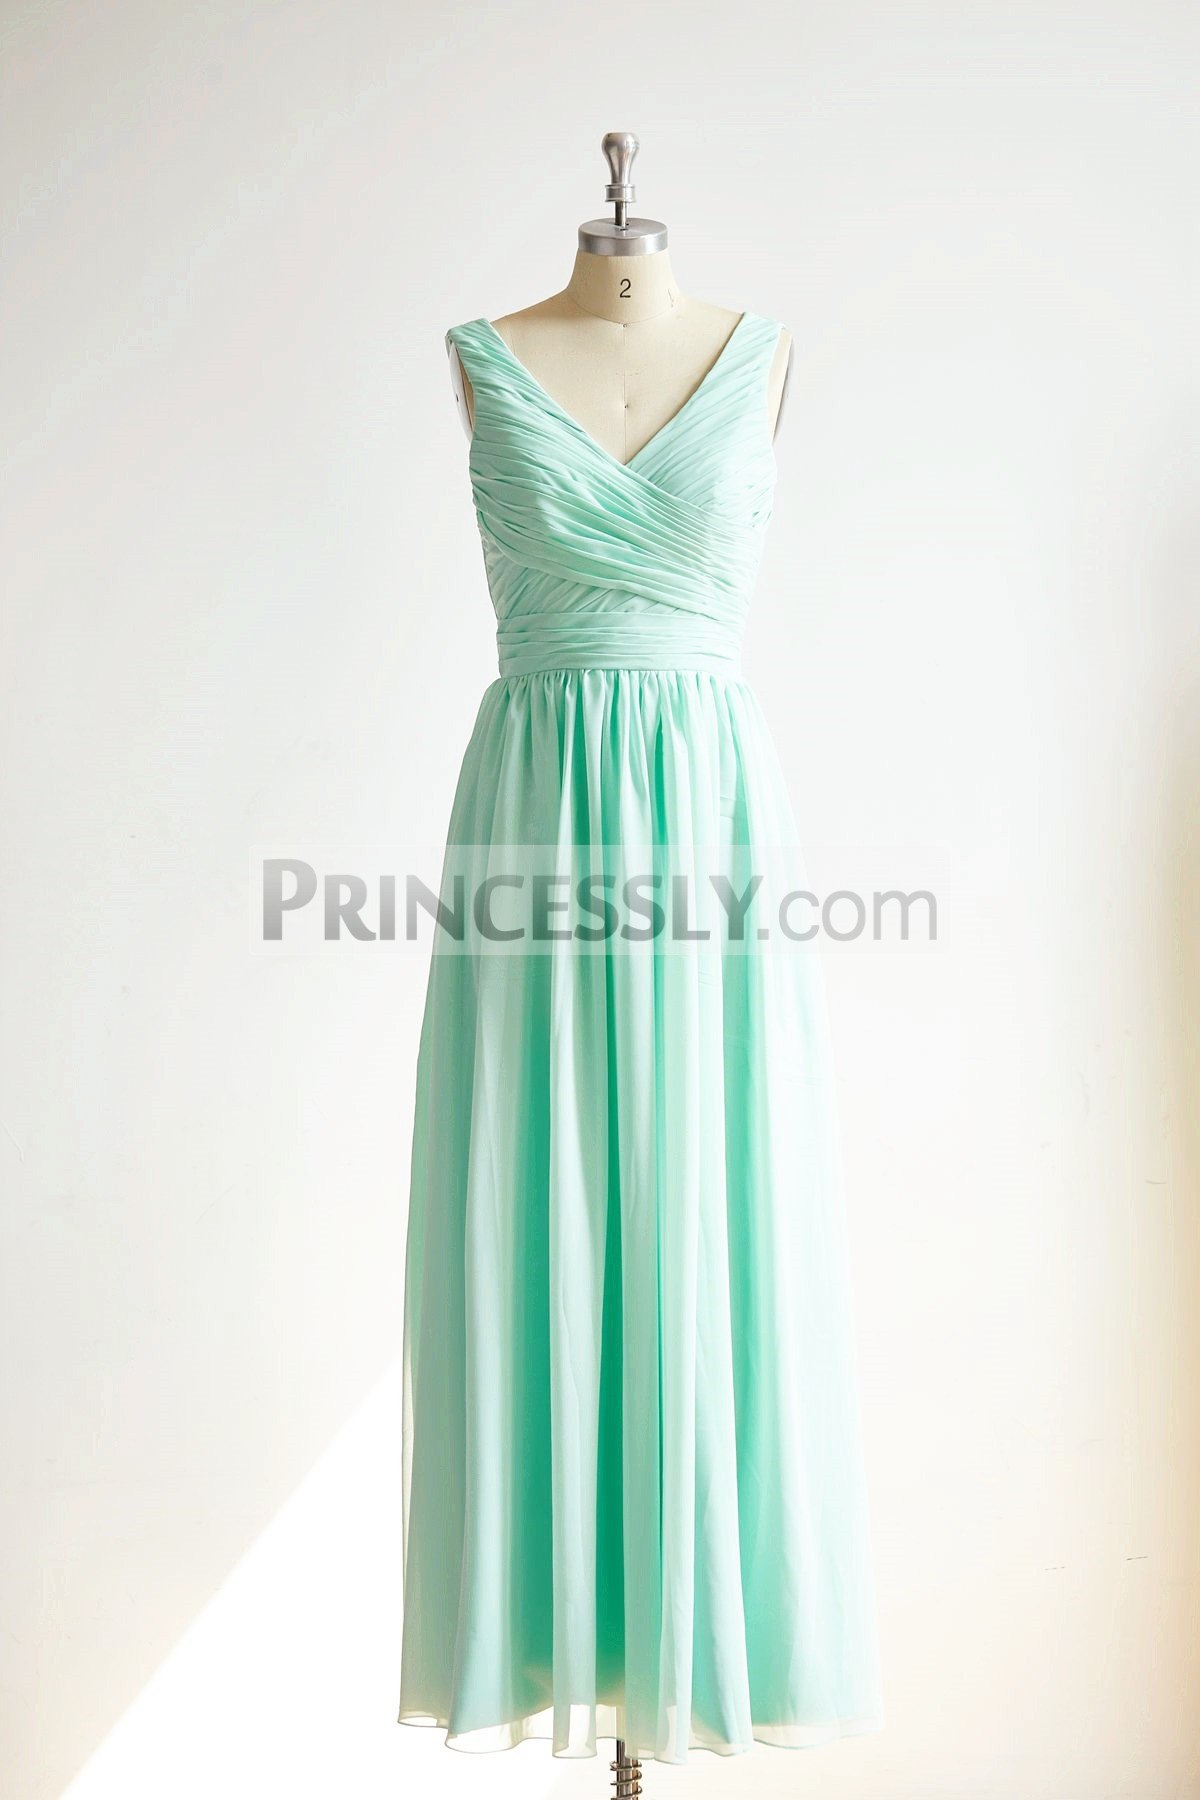 Princessly.com-K1000298-V Neck Mint Blue Chiffon Long Wedding Bridesmaid Dress-31